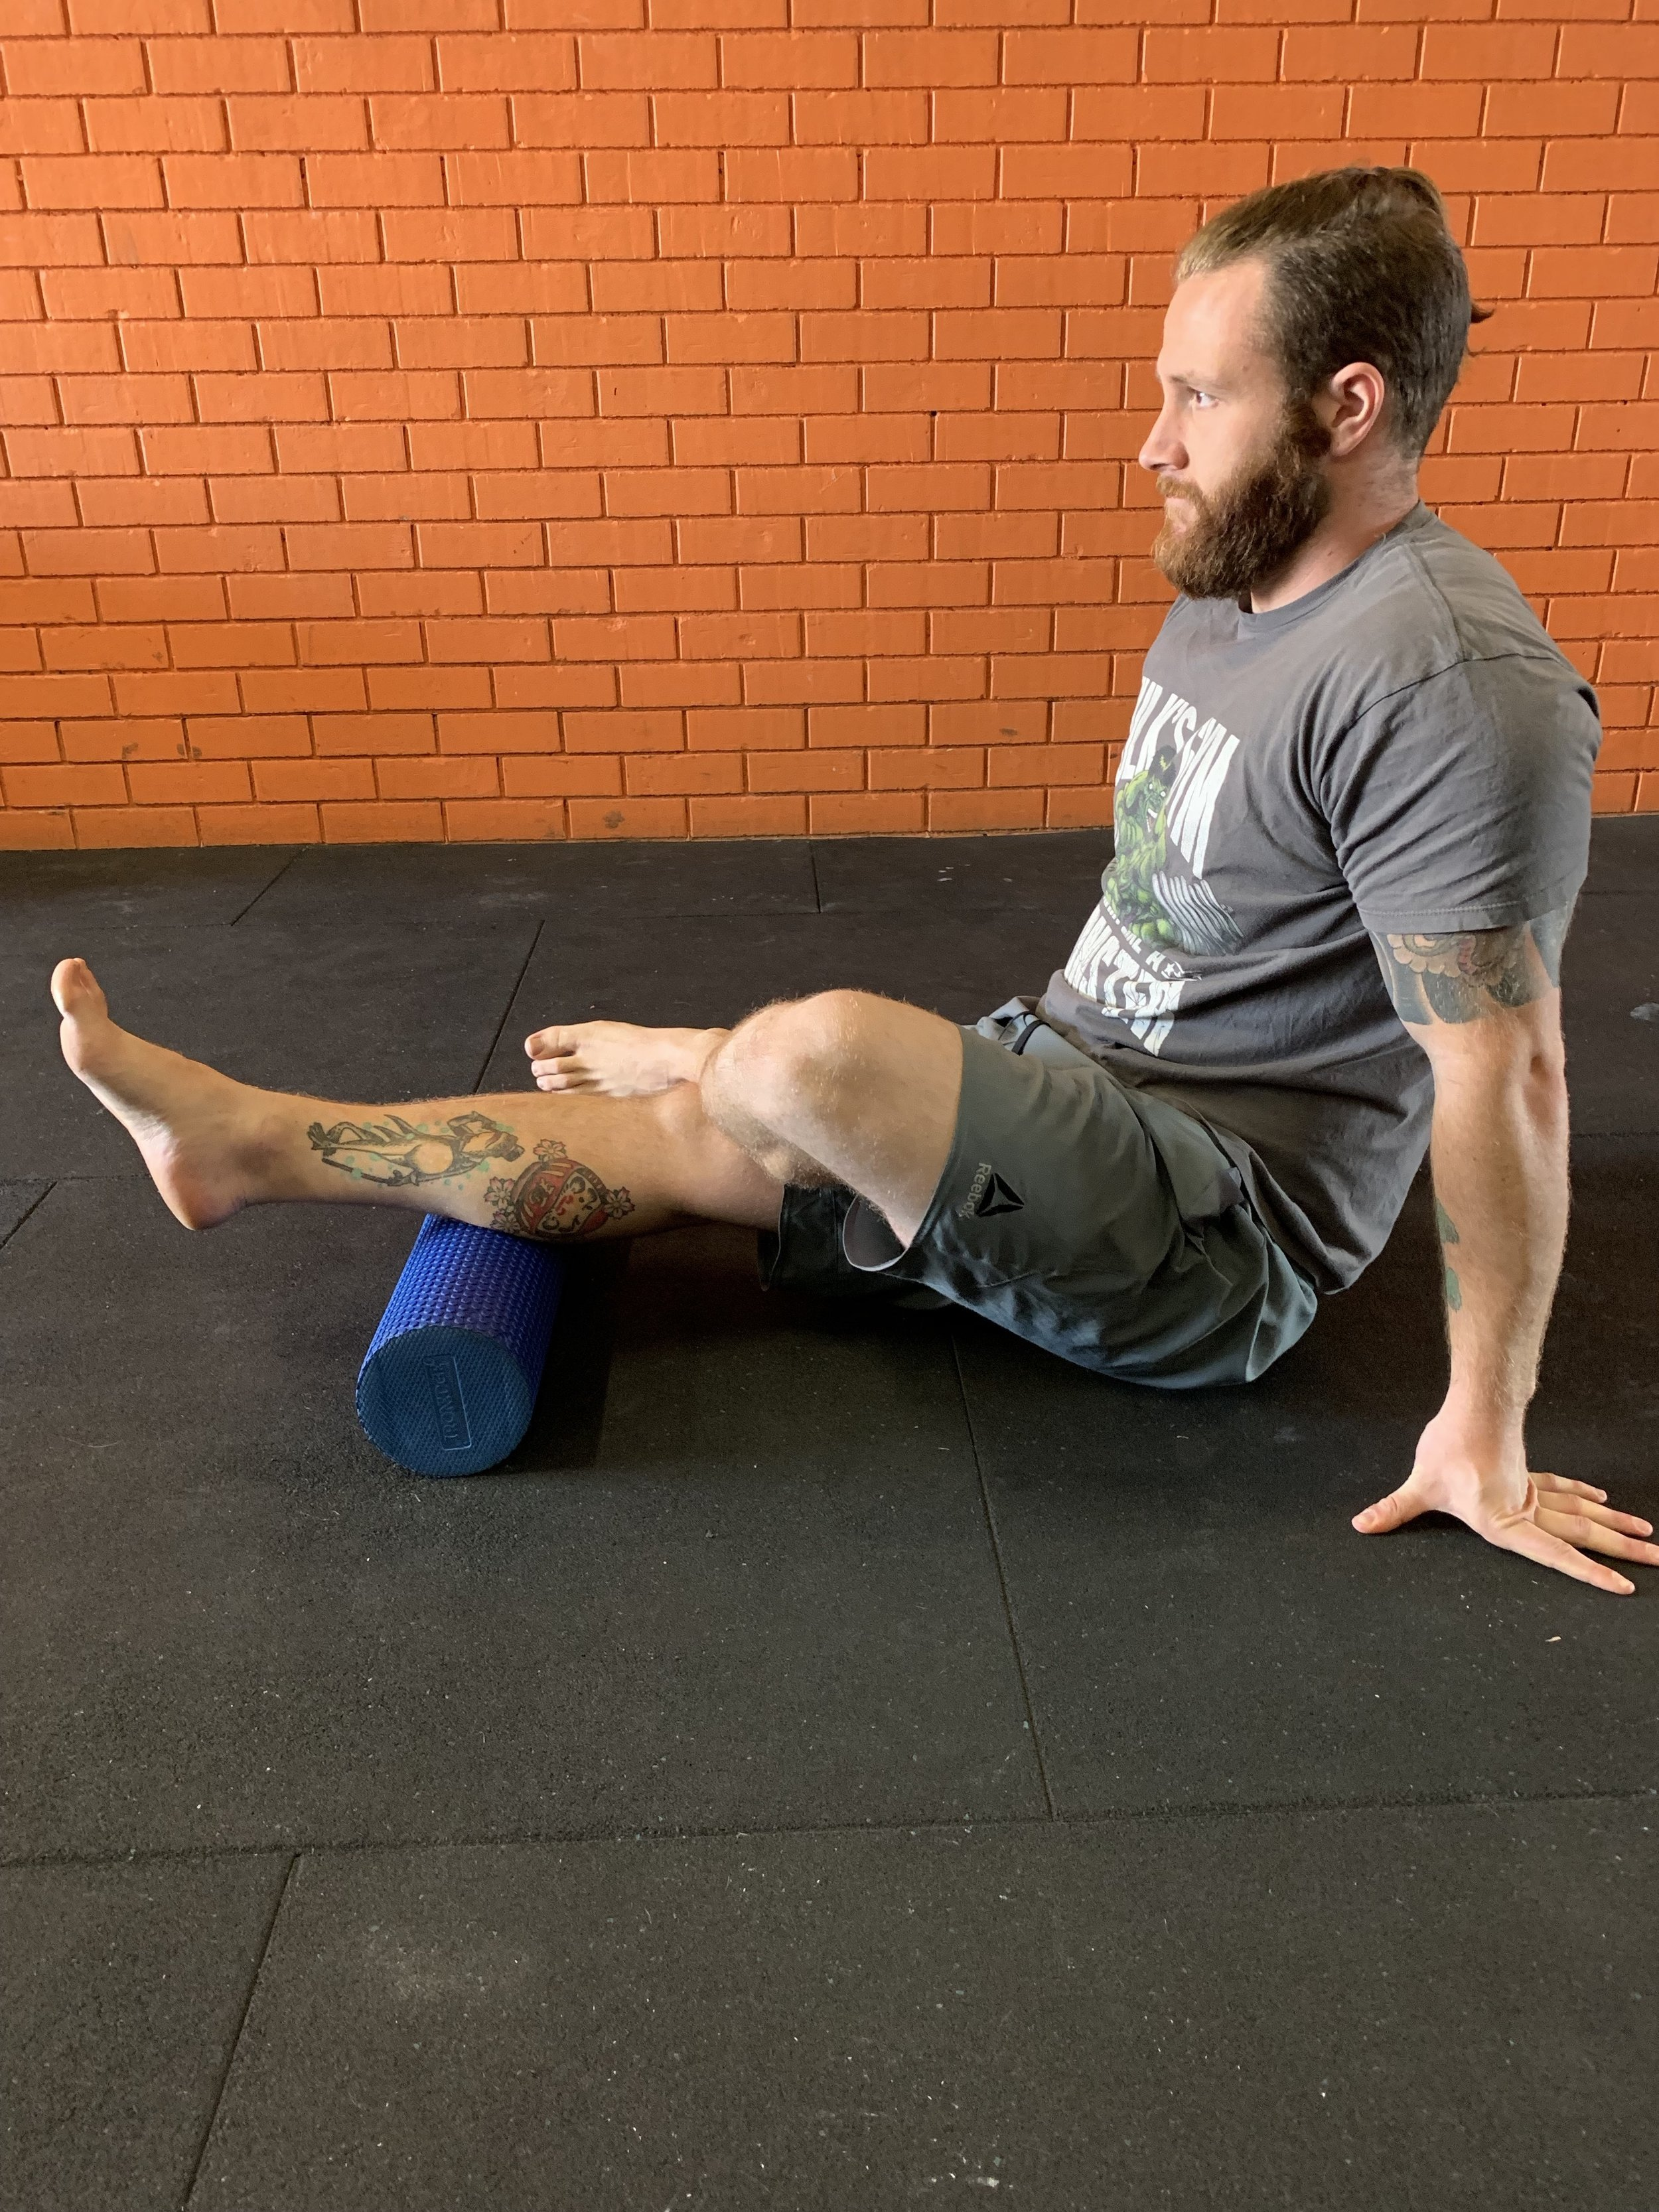 Mobilisation of the calf with a foam roller